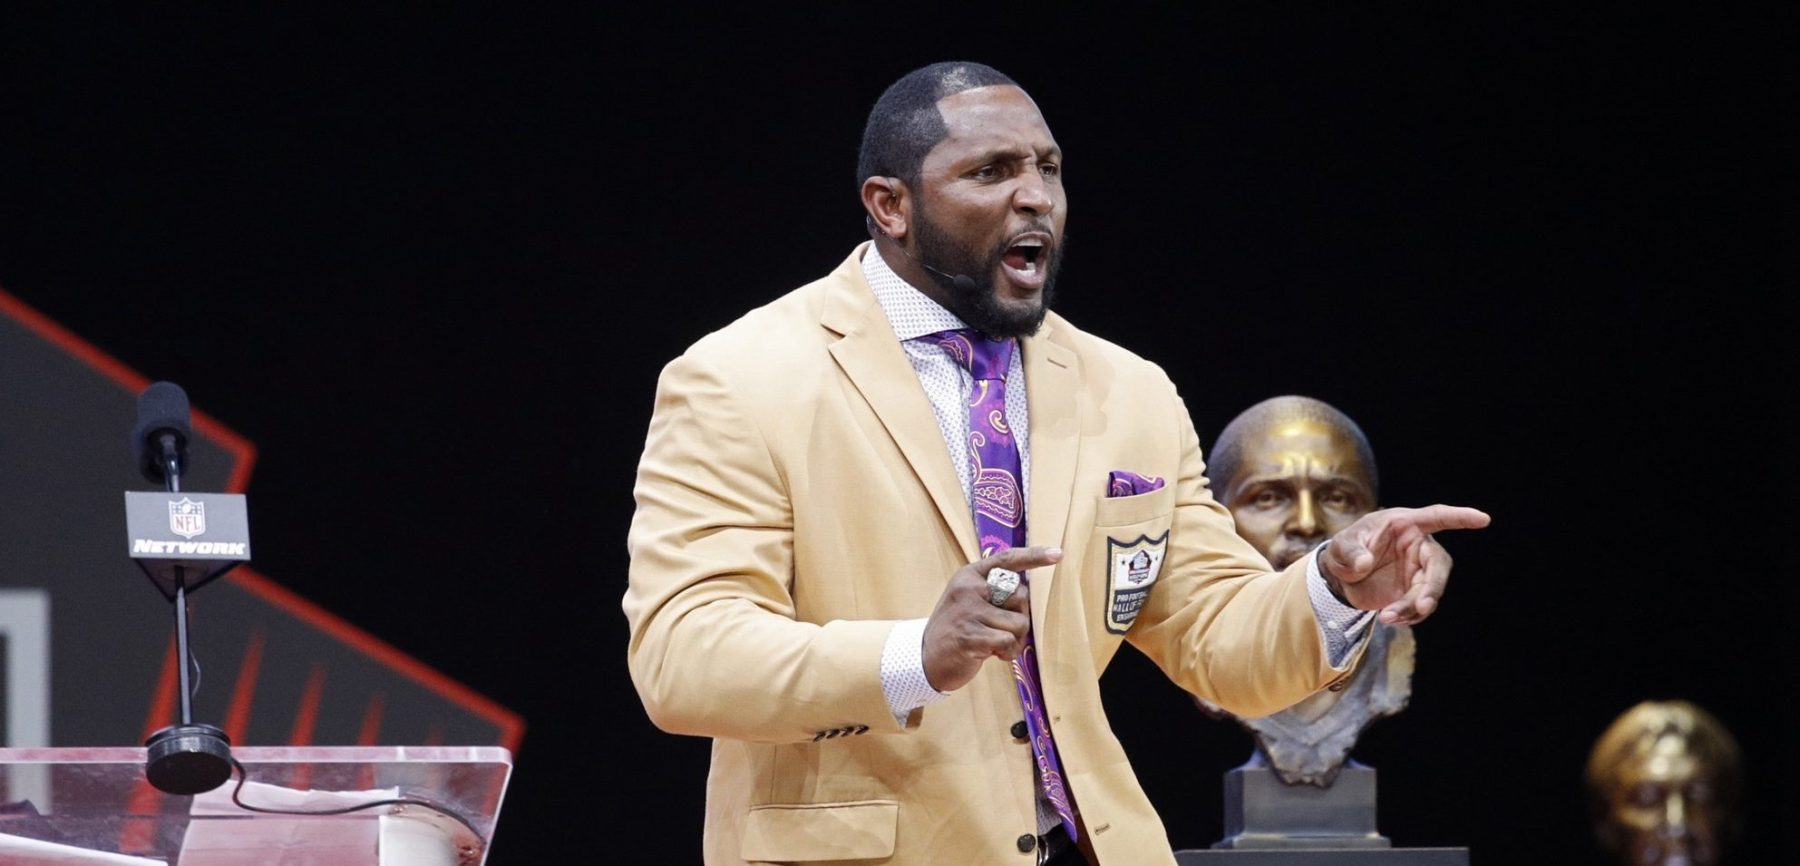 Ray Lewis speaks during the 2018 NFL Hall of Fame Enshrinement Ceremony at Tom Benson Hall of Fame Stadium on August 4, 2018 in Canton, Ohio. (Photo by Joe Robbins/Getty Images)